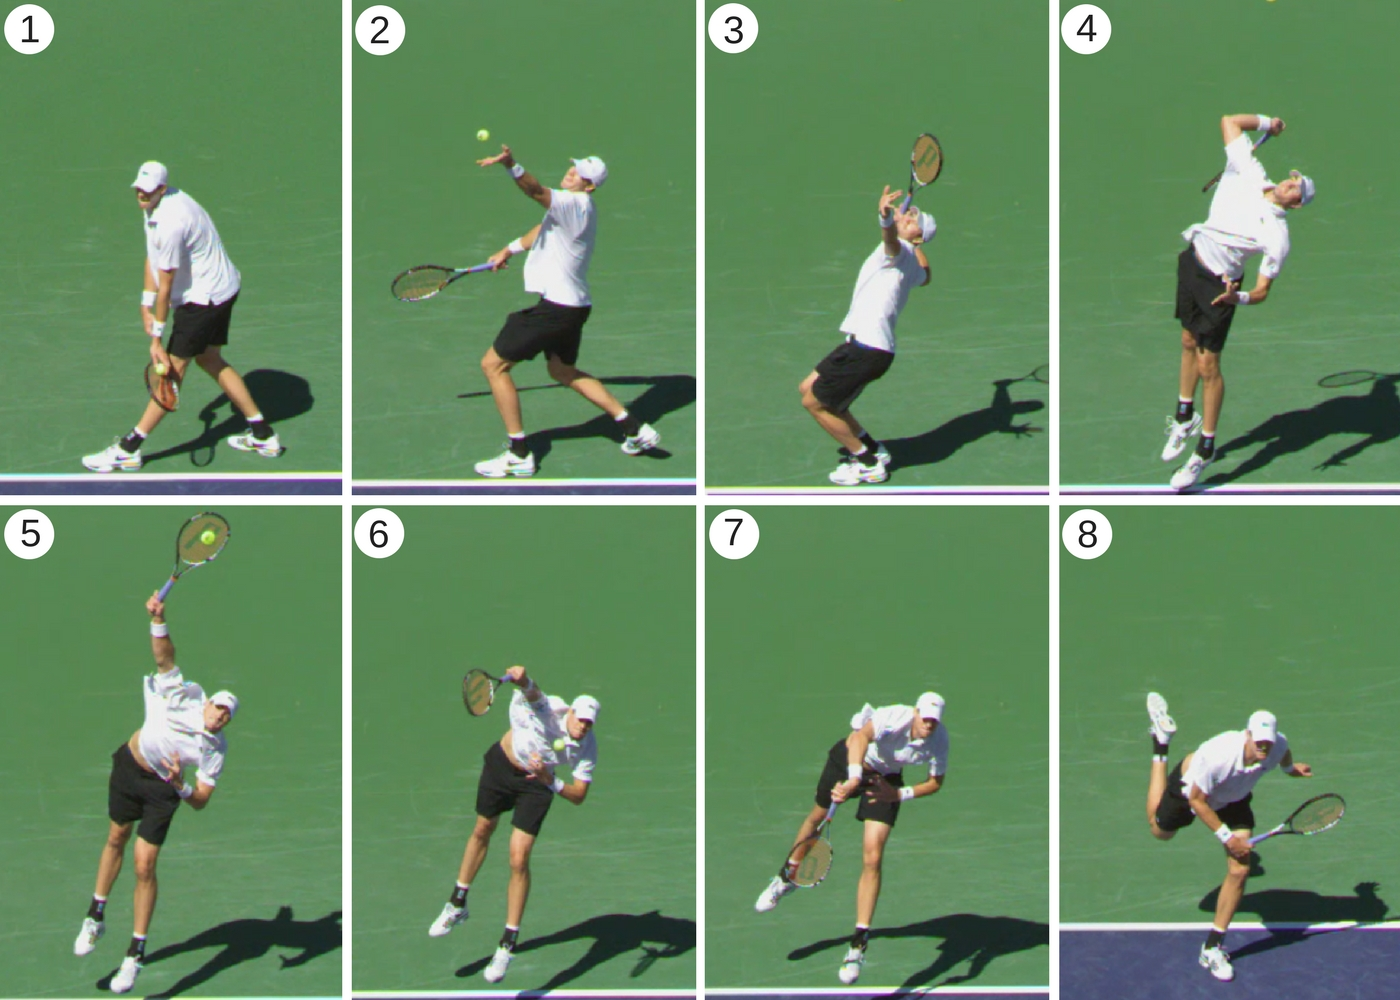 Beginner tips How to serve step by step